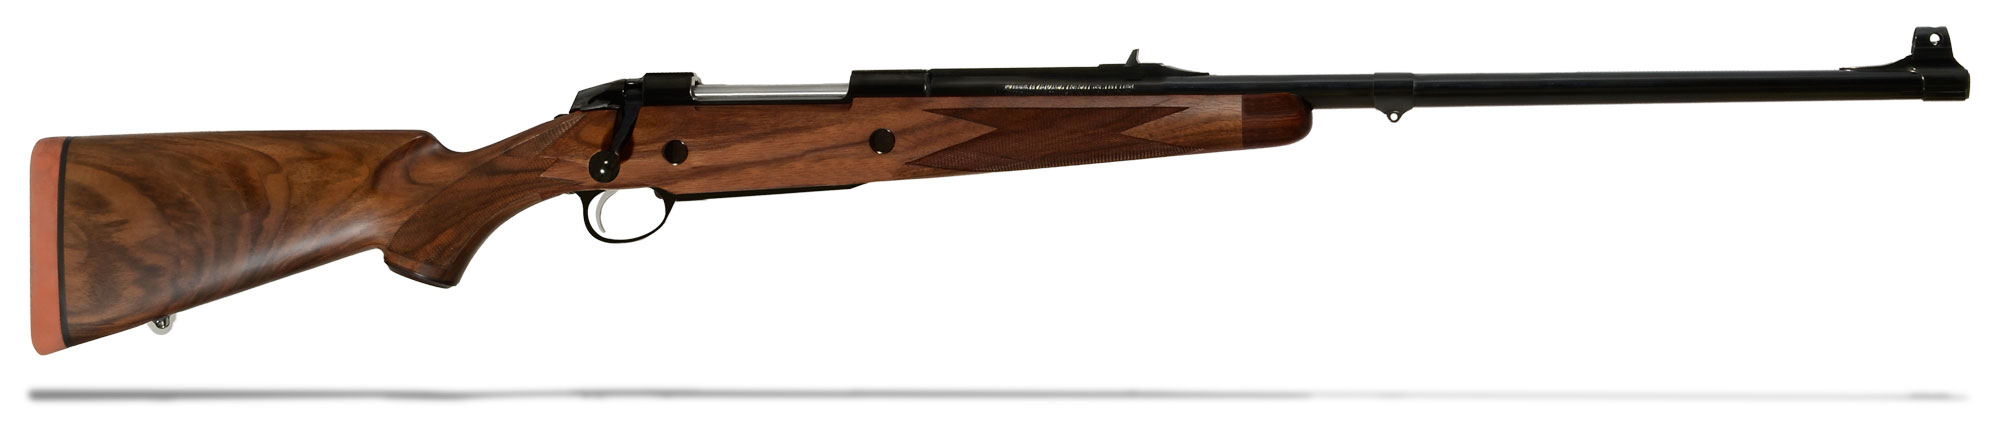 Sako Safari .375 HH Mag Rifle D32773